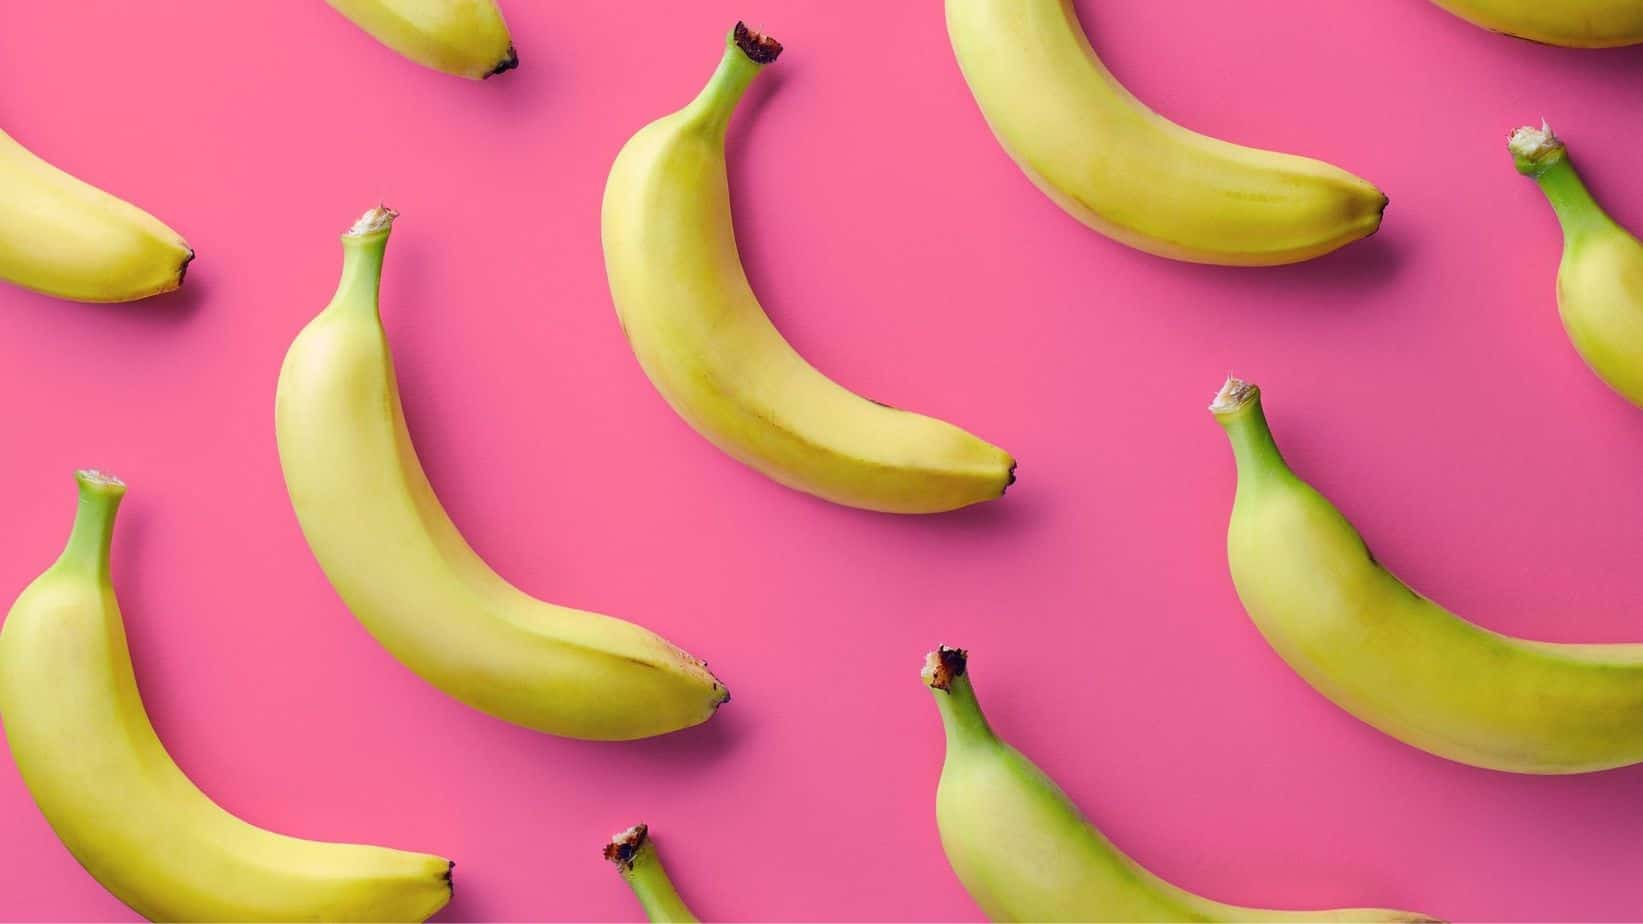 Is the banana a fruit